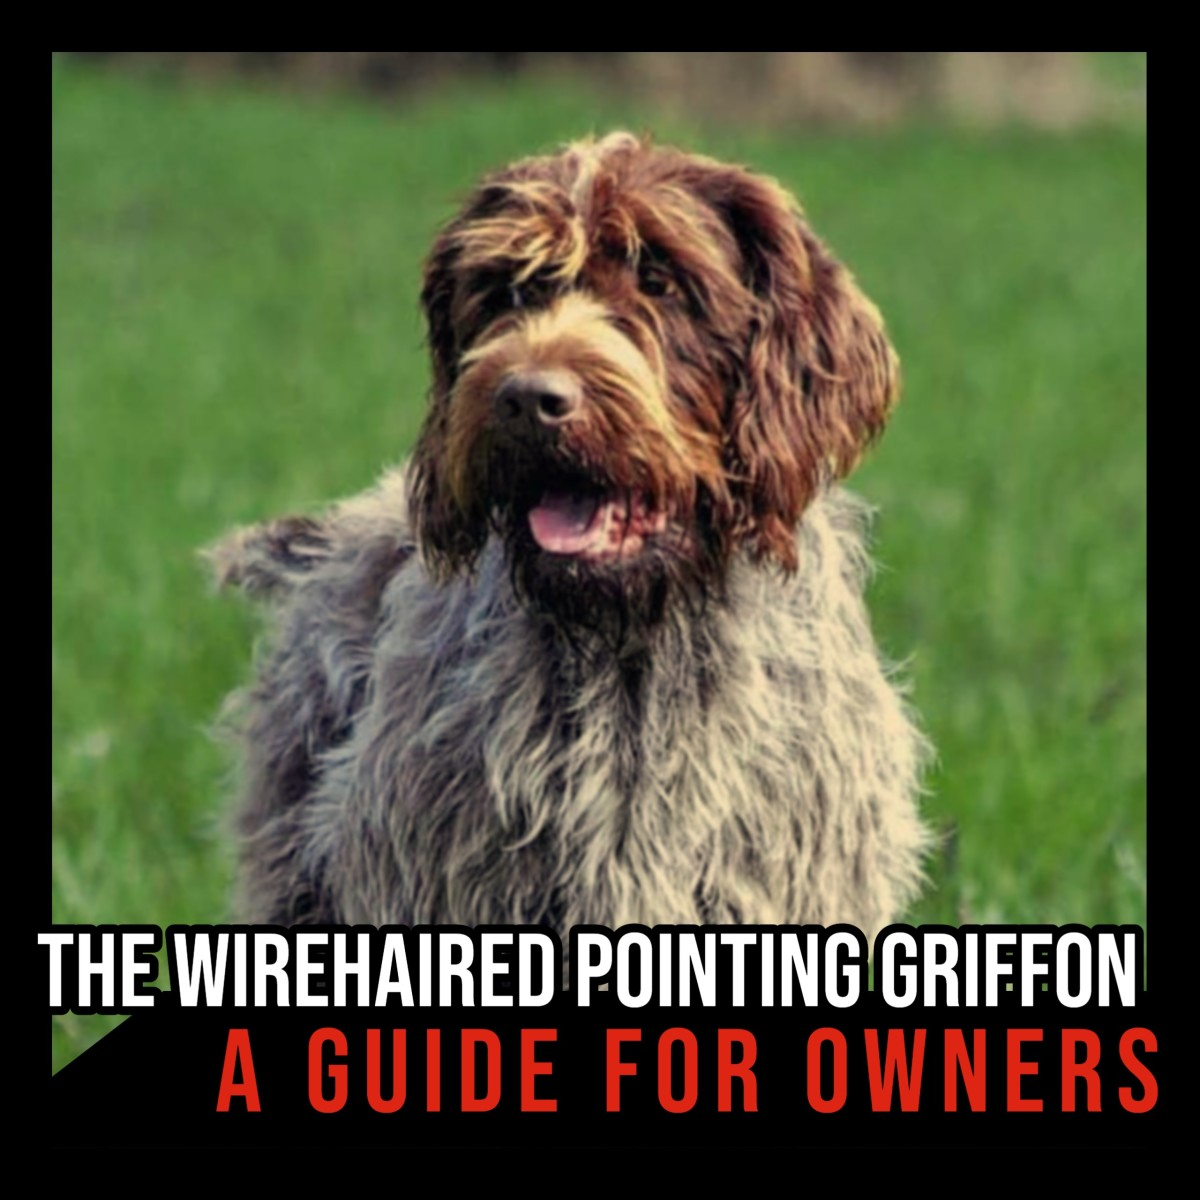 The Wirehaired Pointing Griffon: A Guide for Owners.